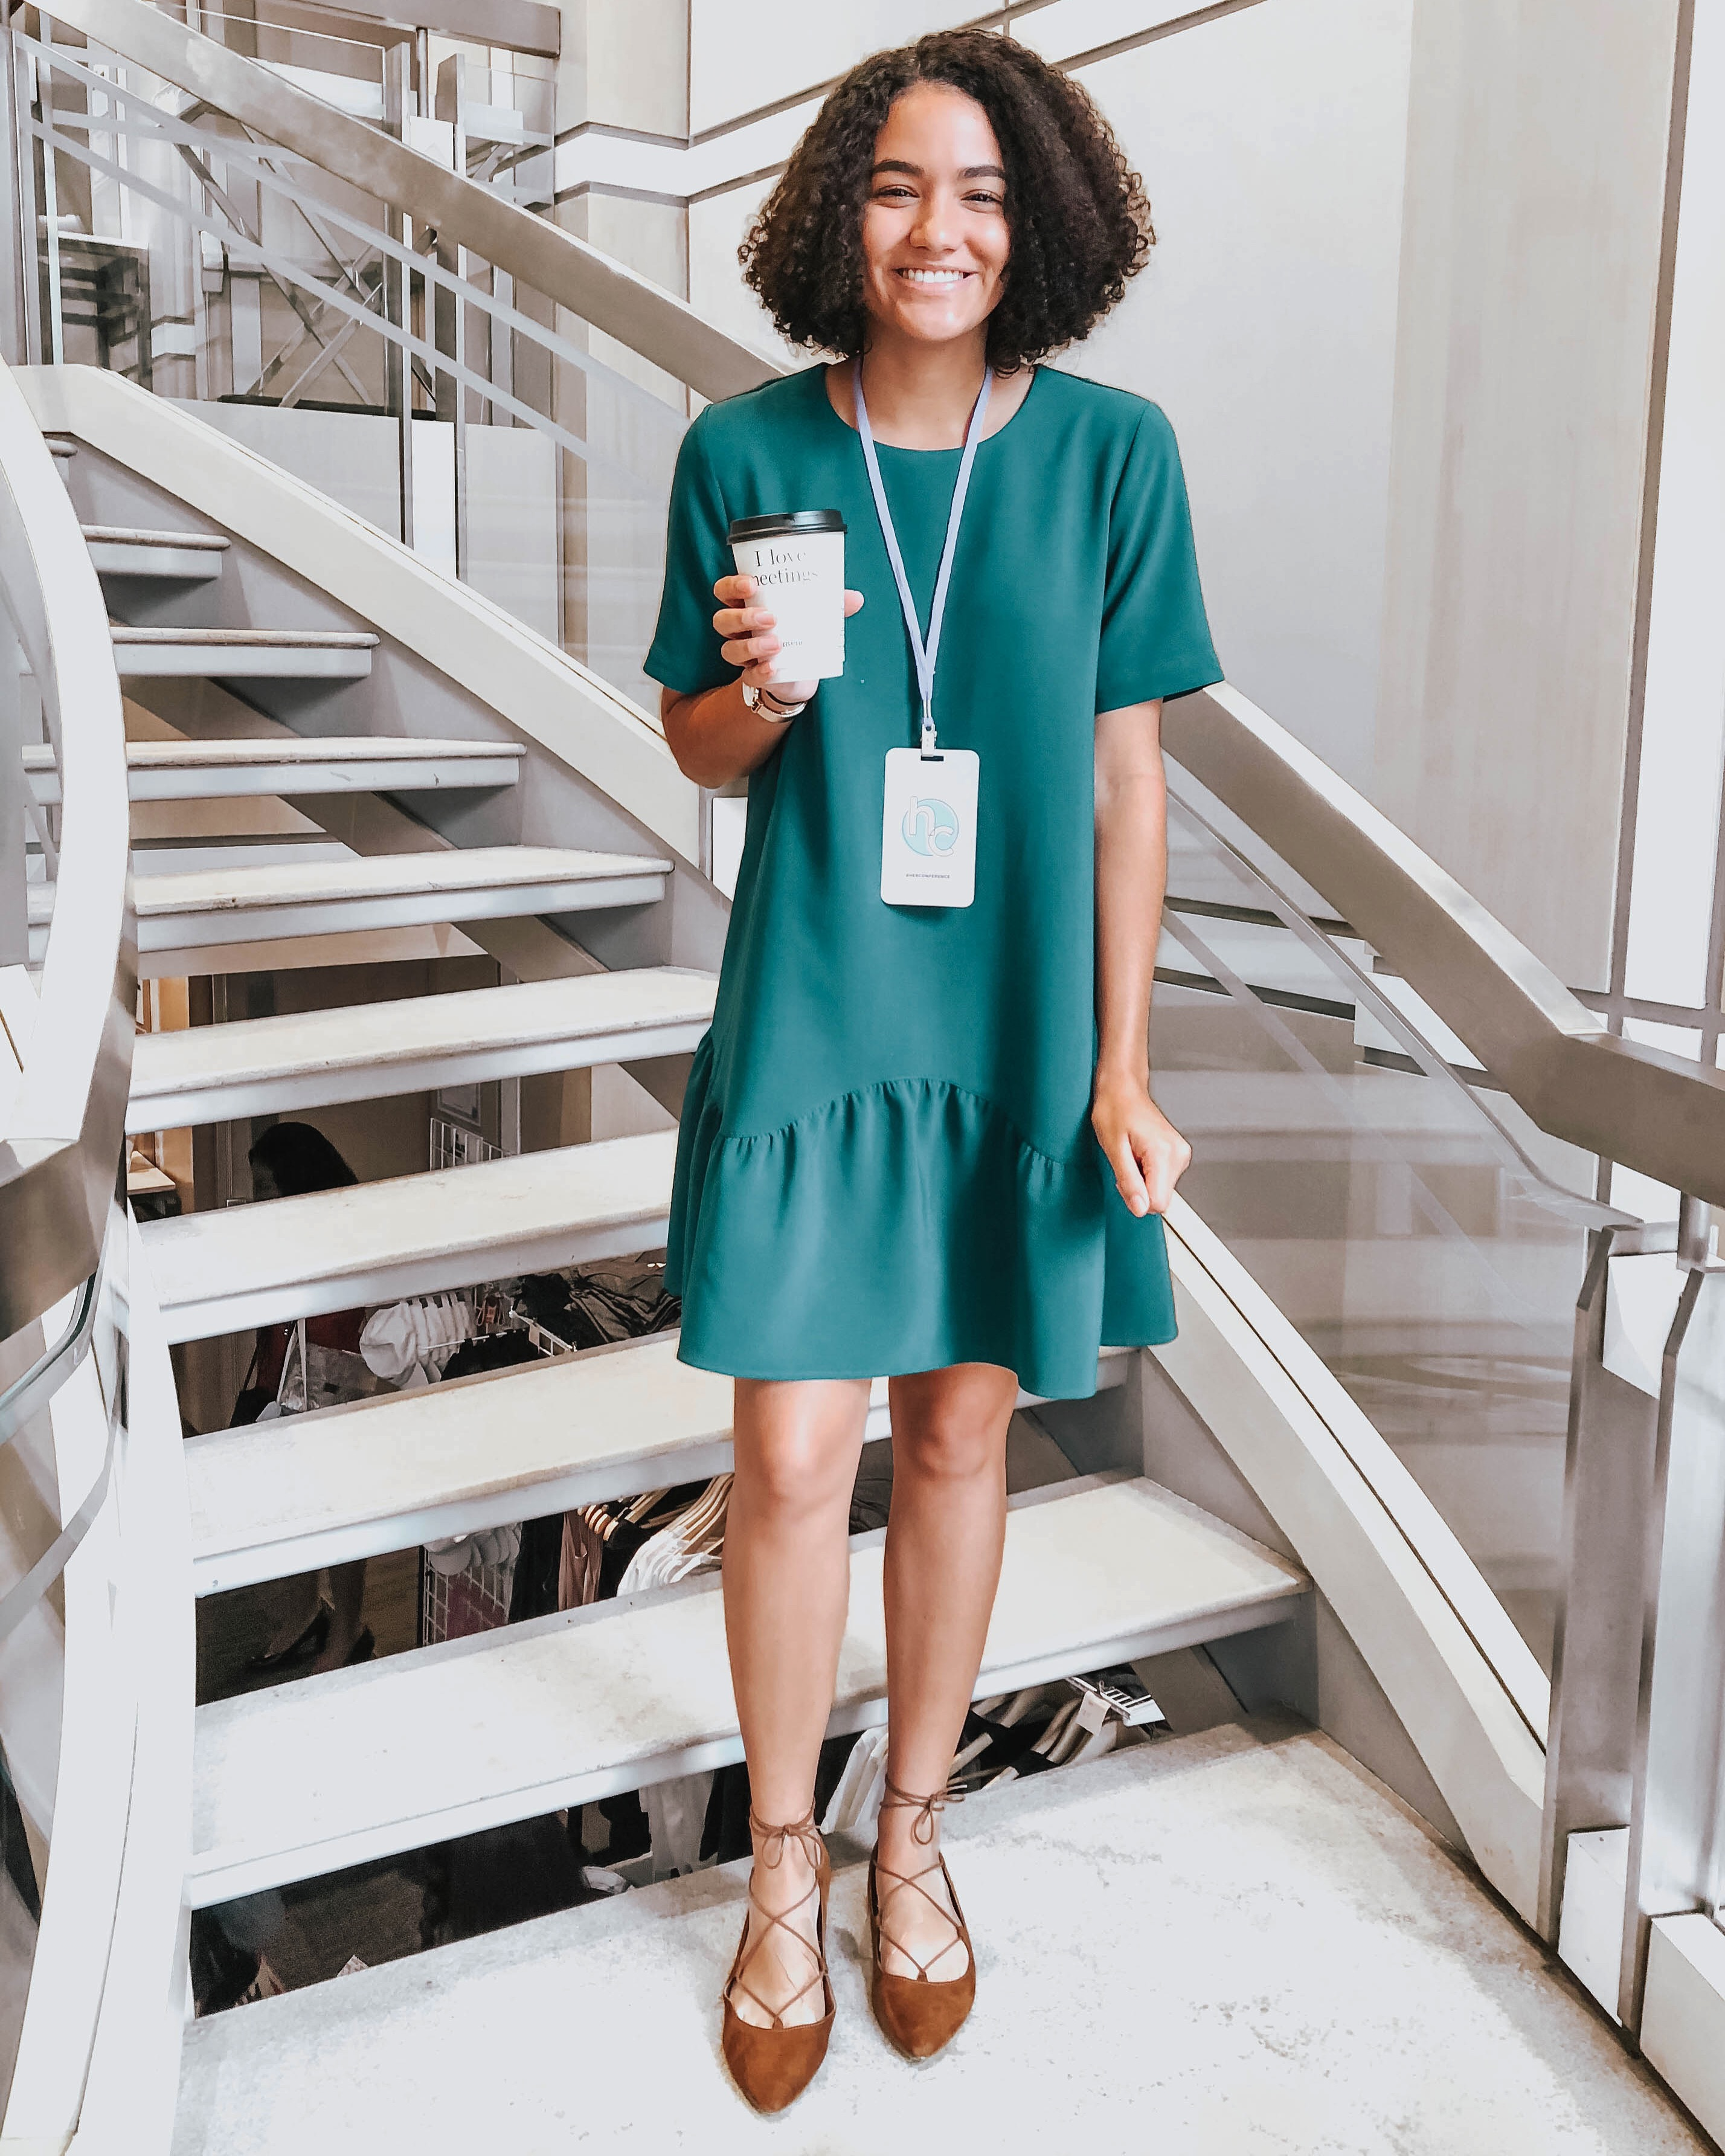 her-conference-outfit